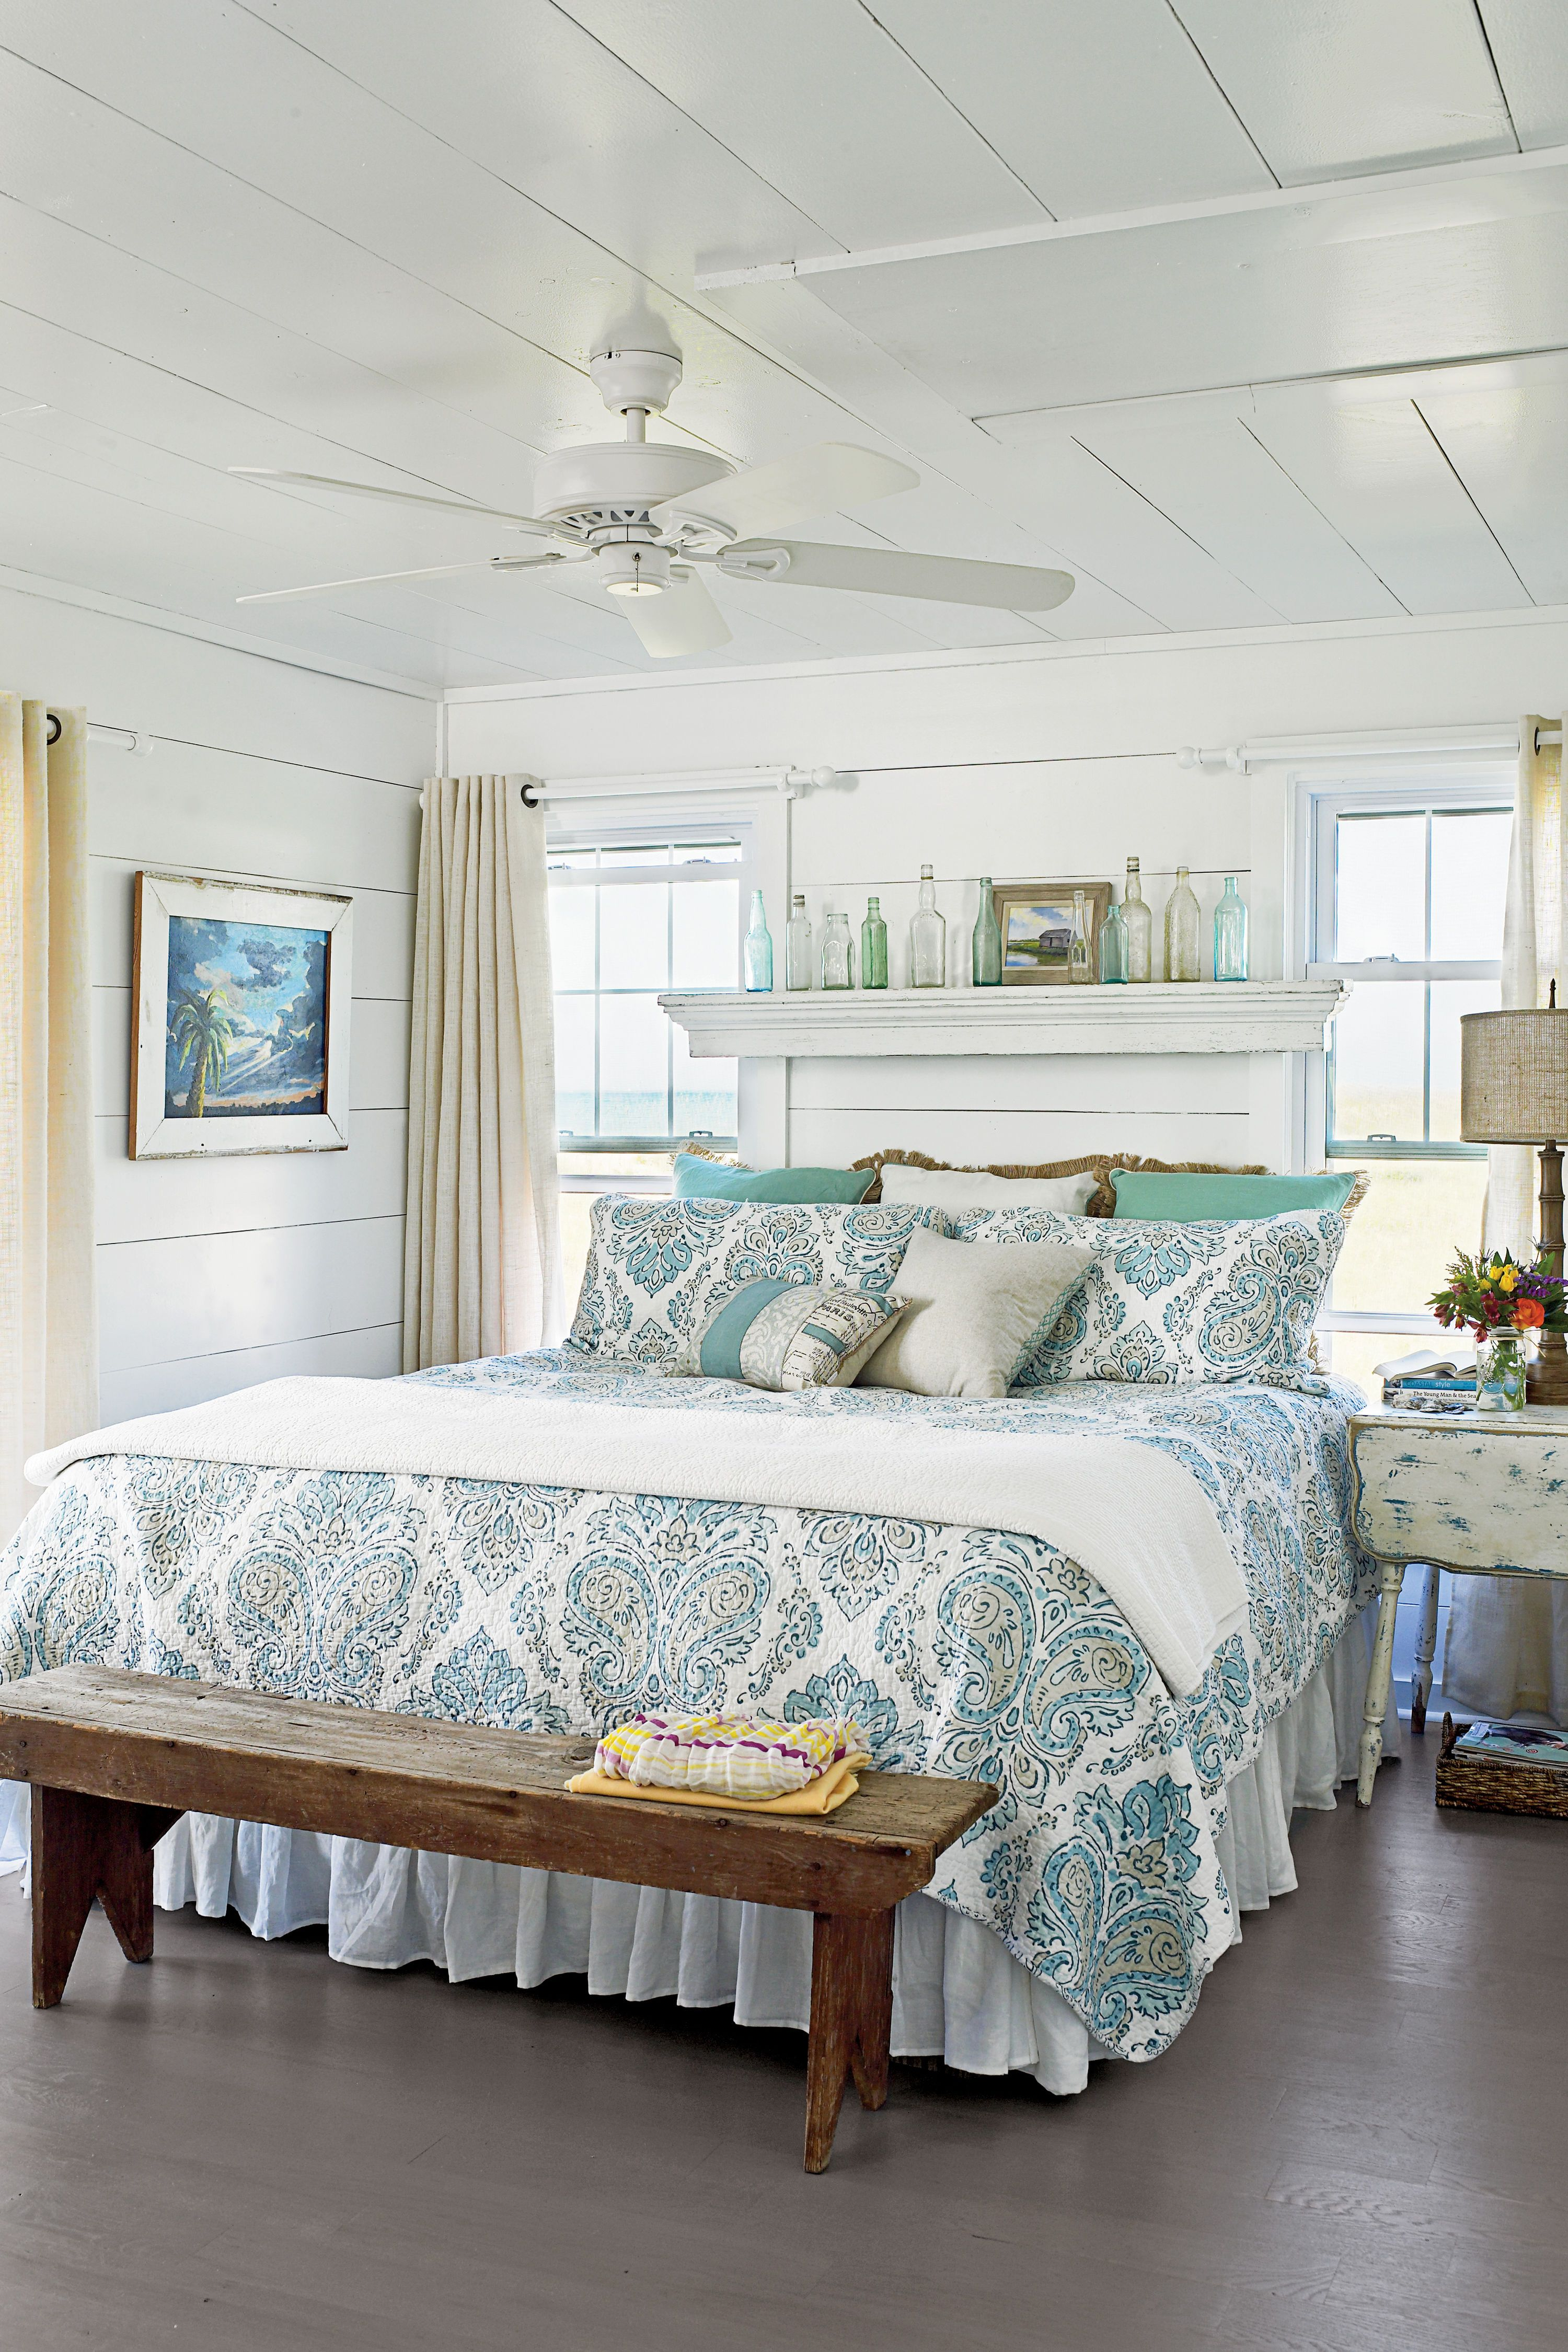 Beachy Bedroom Ideas. Beautiful Beach and Sea Decor Inspiration for your Bedroom  Nice Patterns For Bed With Bedside Table And White Decoration Idea Room Long Wooden A blue green patterned duvet accent pillows add a lively